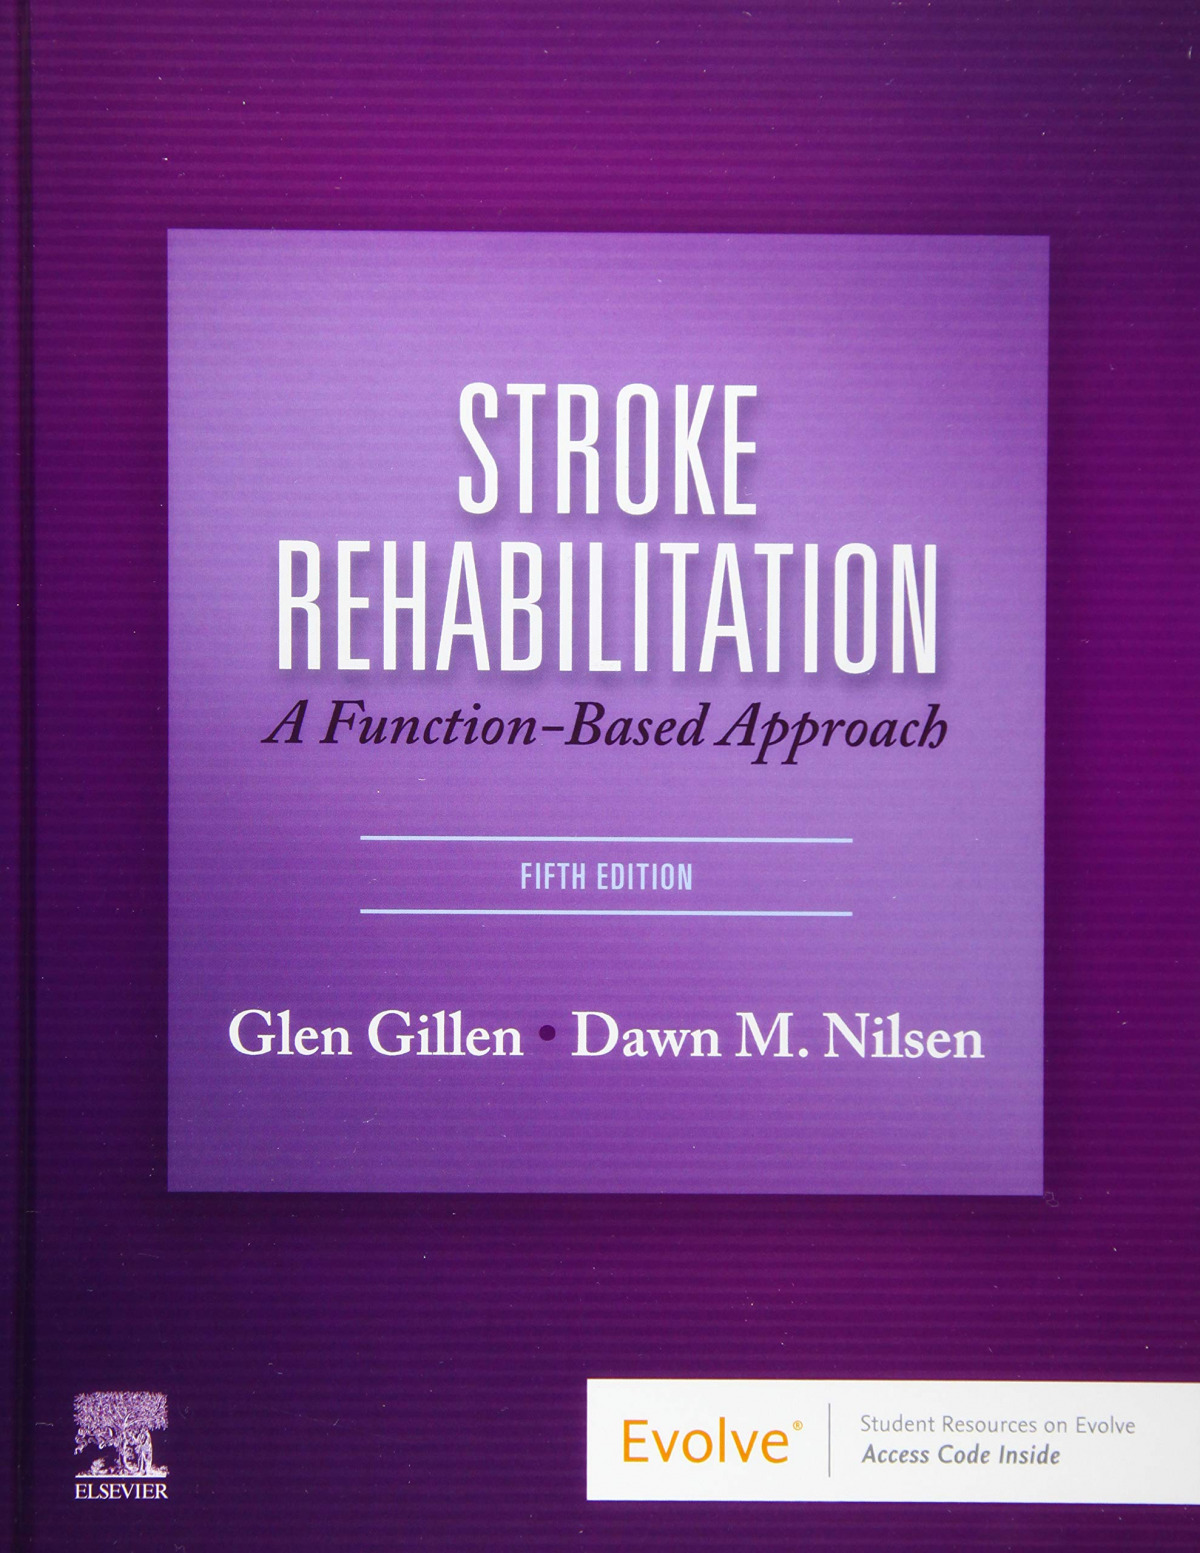 Stroke rehabilitation.a function-based approach